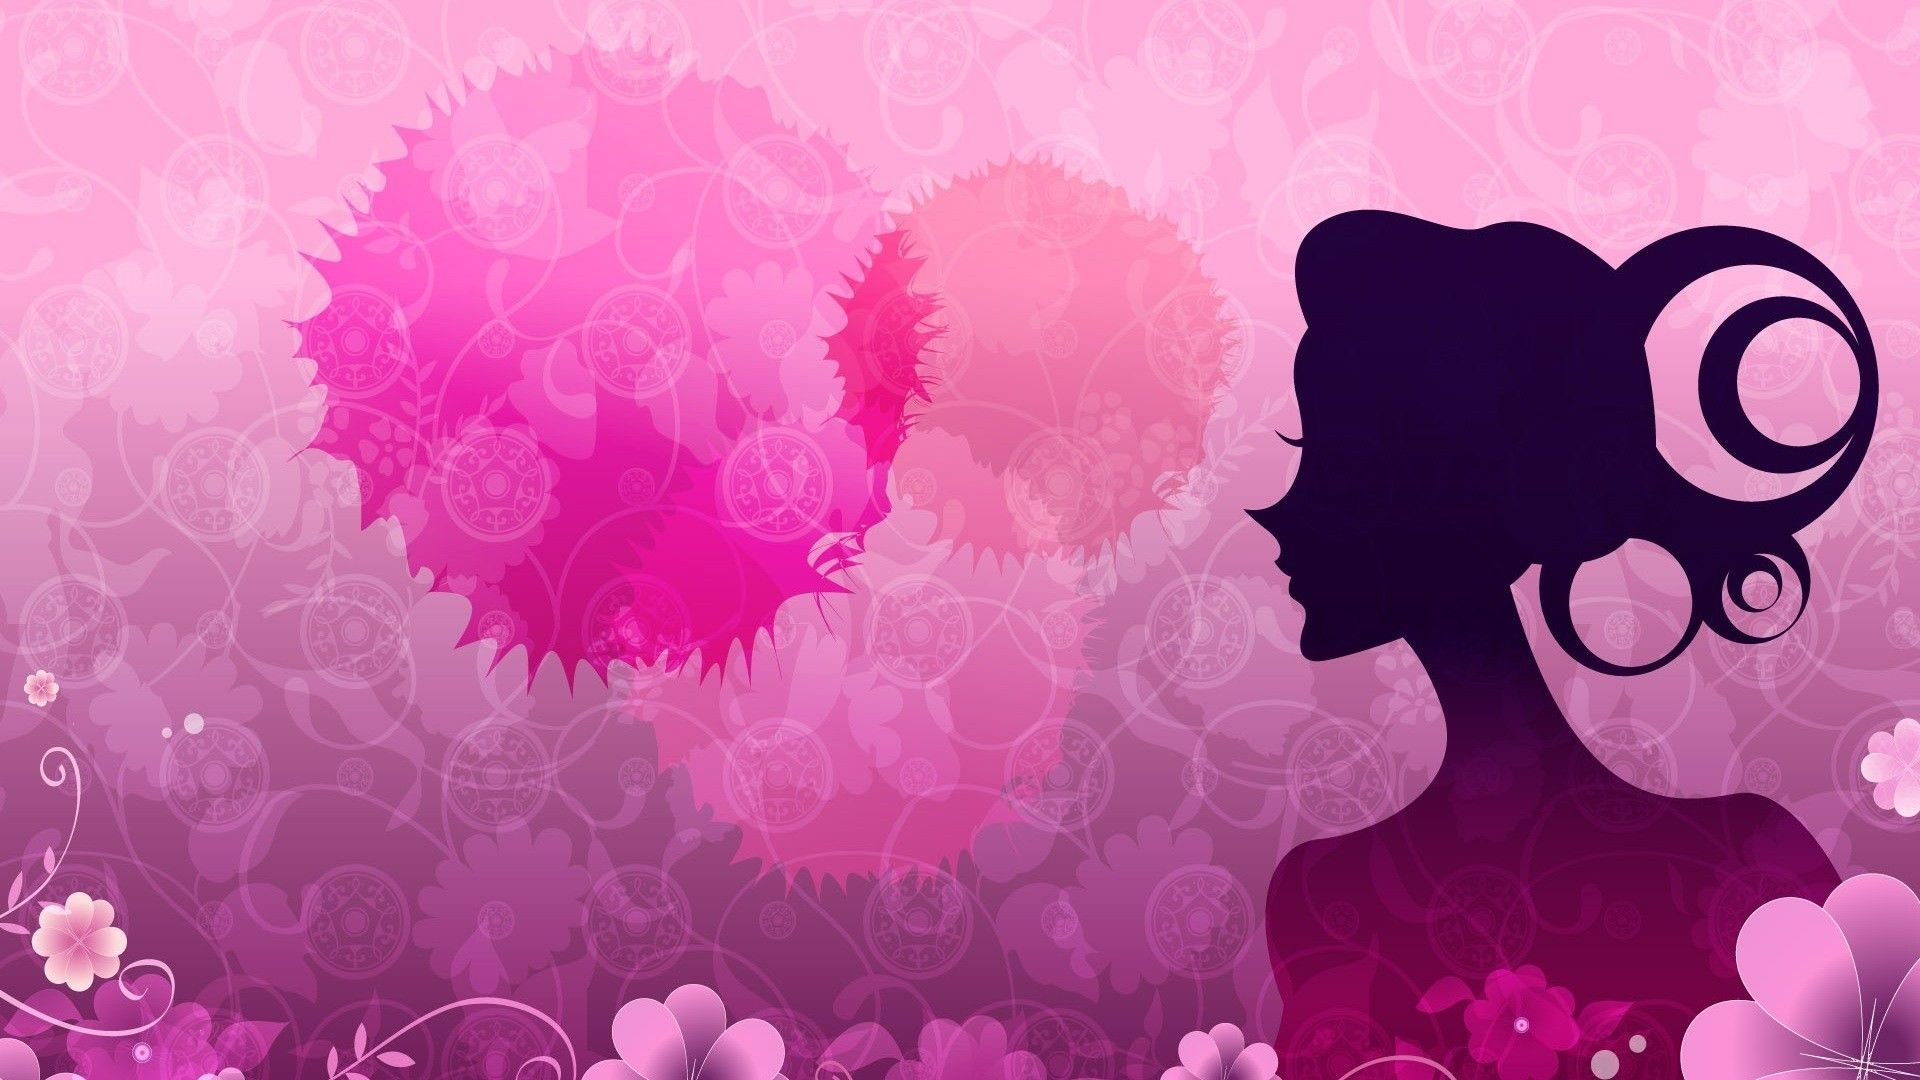 Girly Laptop Wallpapers   Top Girly Laptop Backgrounds 1920x1080